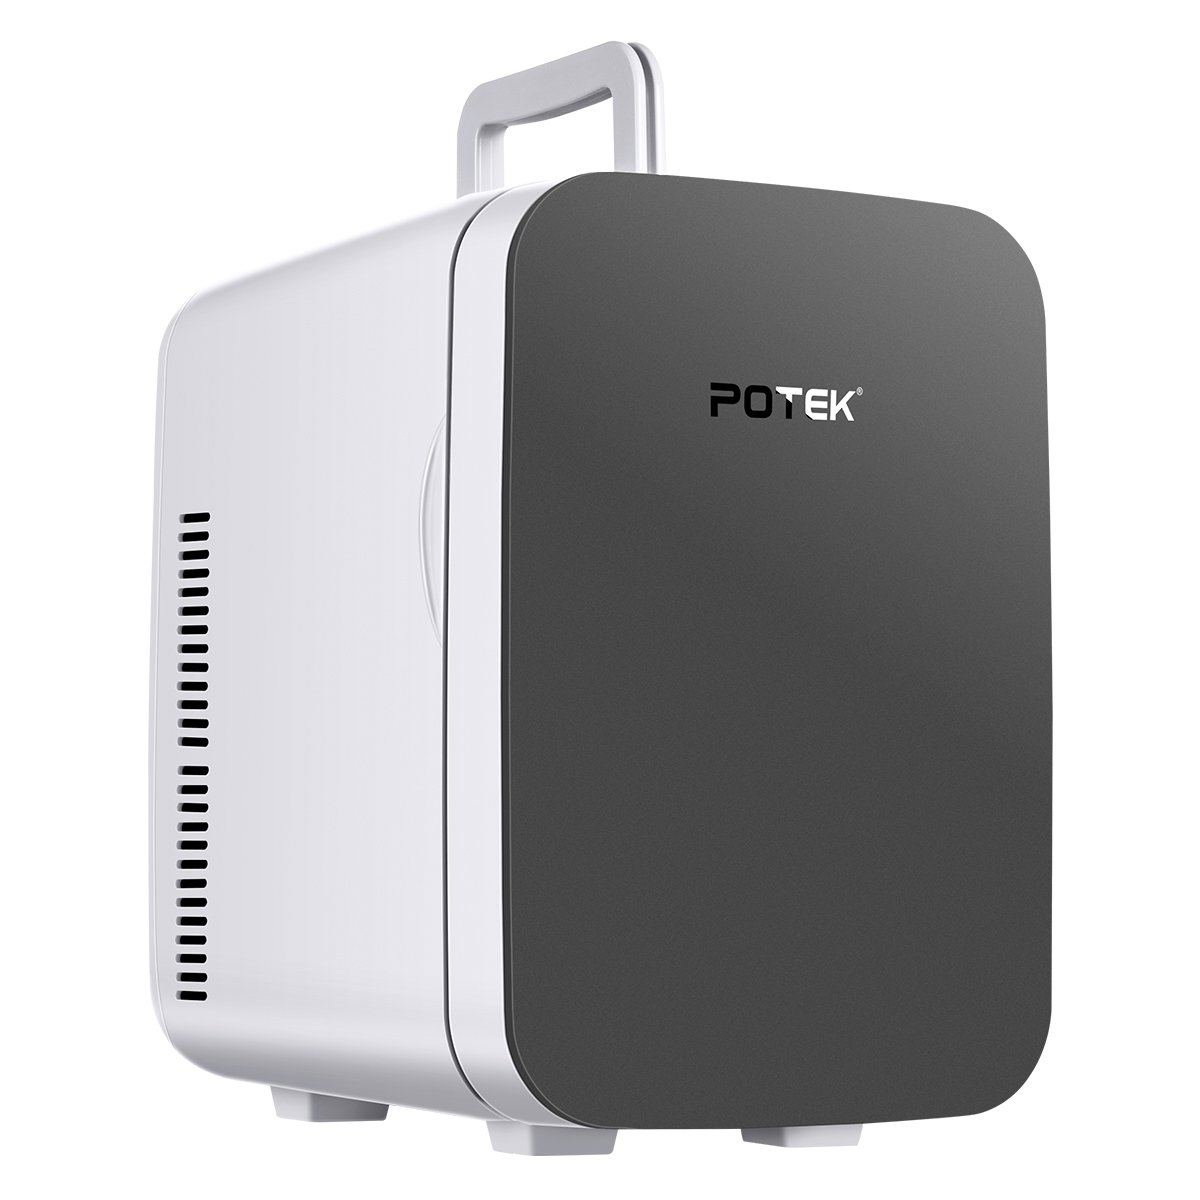 Potek 15 Liter/18 Can Portable AC/DC Mini Fridge Thermoelectric Cooler and Warmer for Home and Car by POTEK (Image #1)